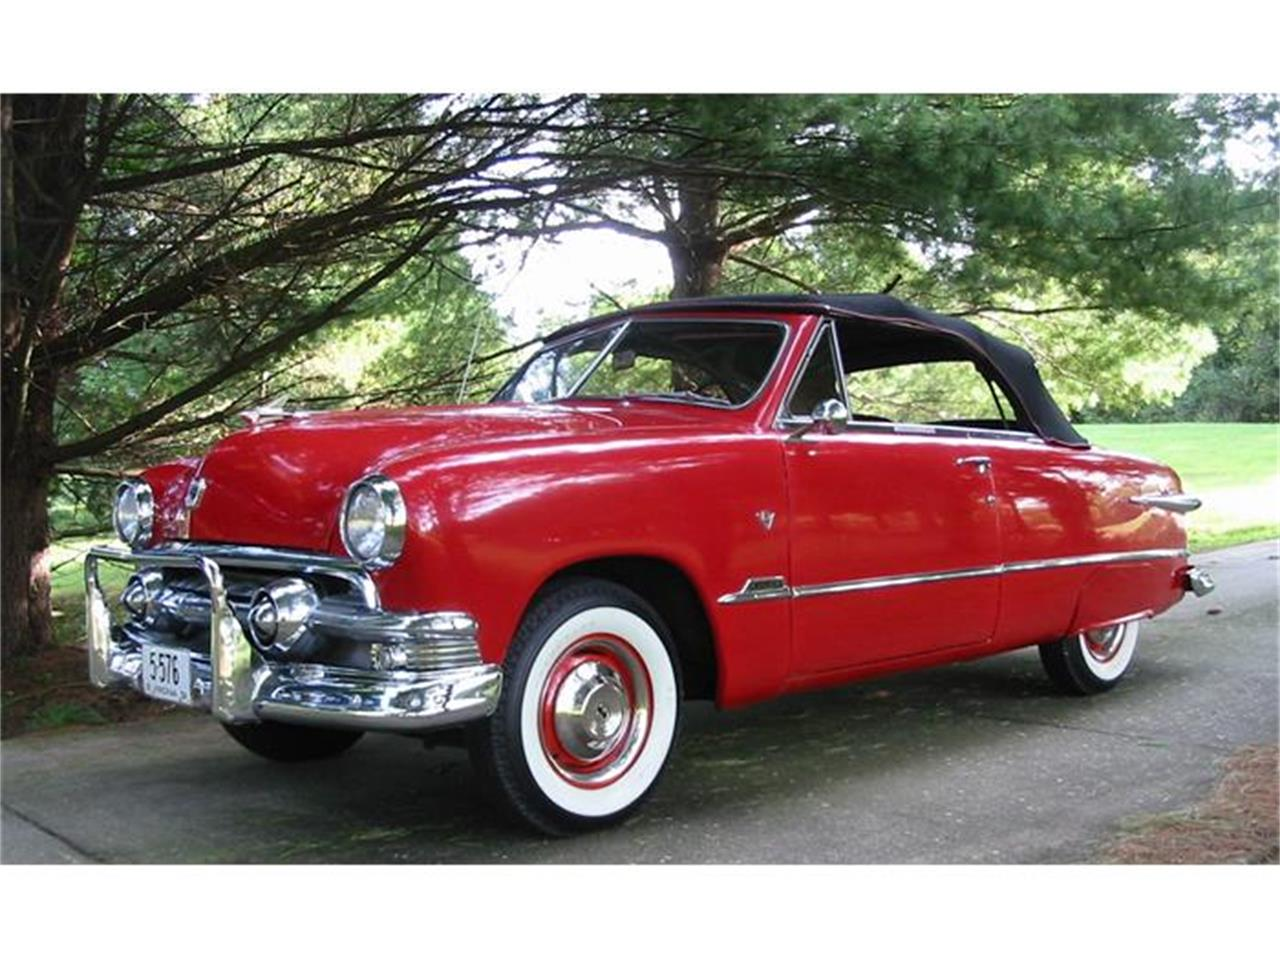 Cars For Sale In Wv: 1951 Ford Convertible For Sale